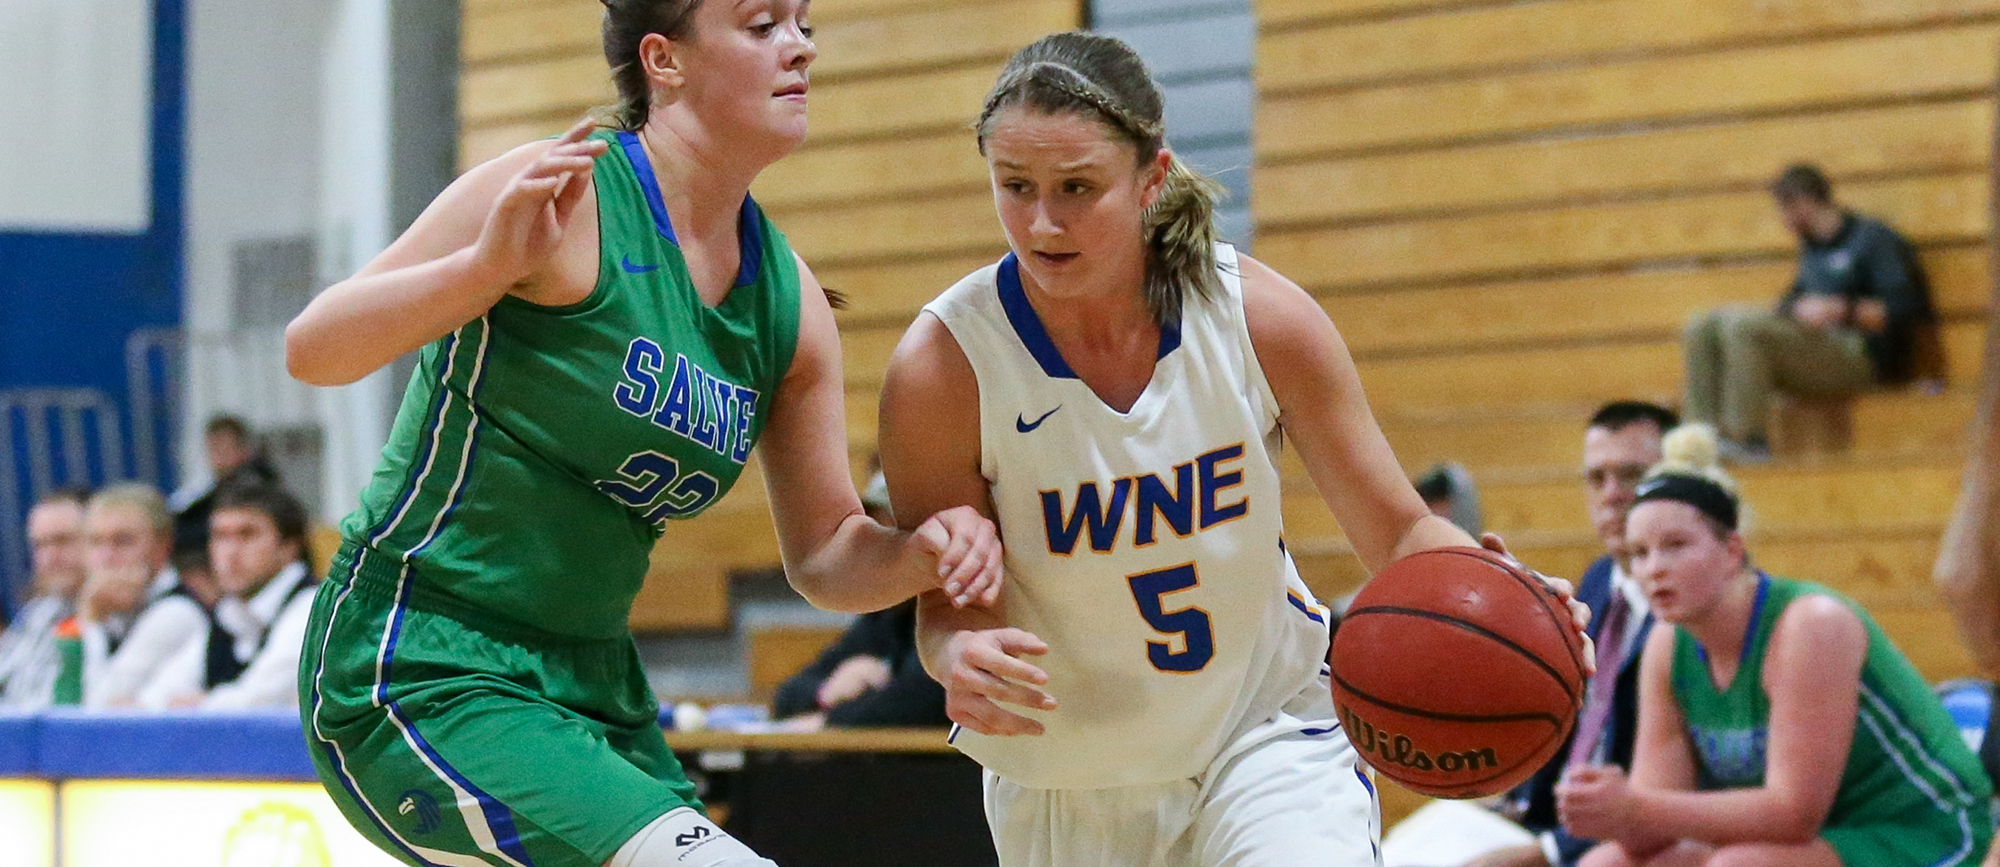 Junior Meghan Gilhool recorded 14 points, seven rebounds, two assists and one steal in Western New England's 70-62 win at UNE on Saturday (Photo by Chris Marion).